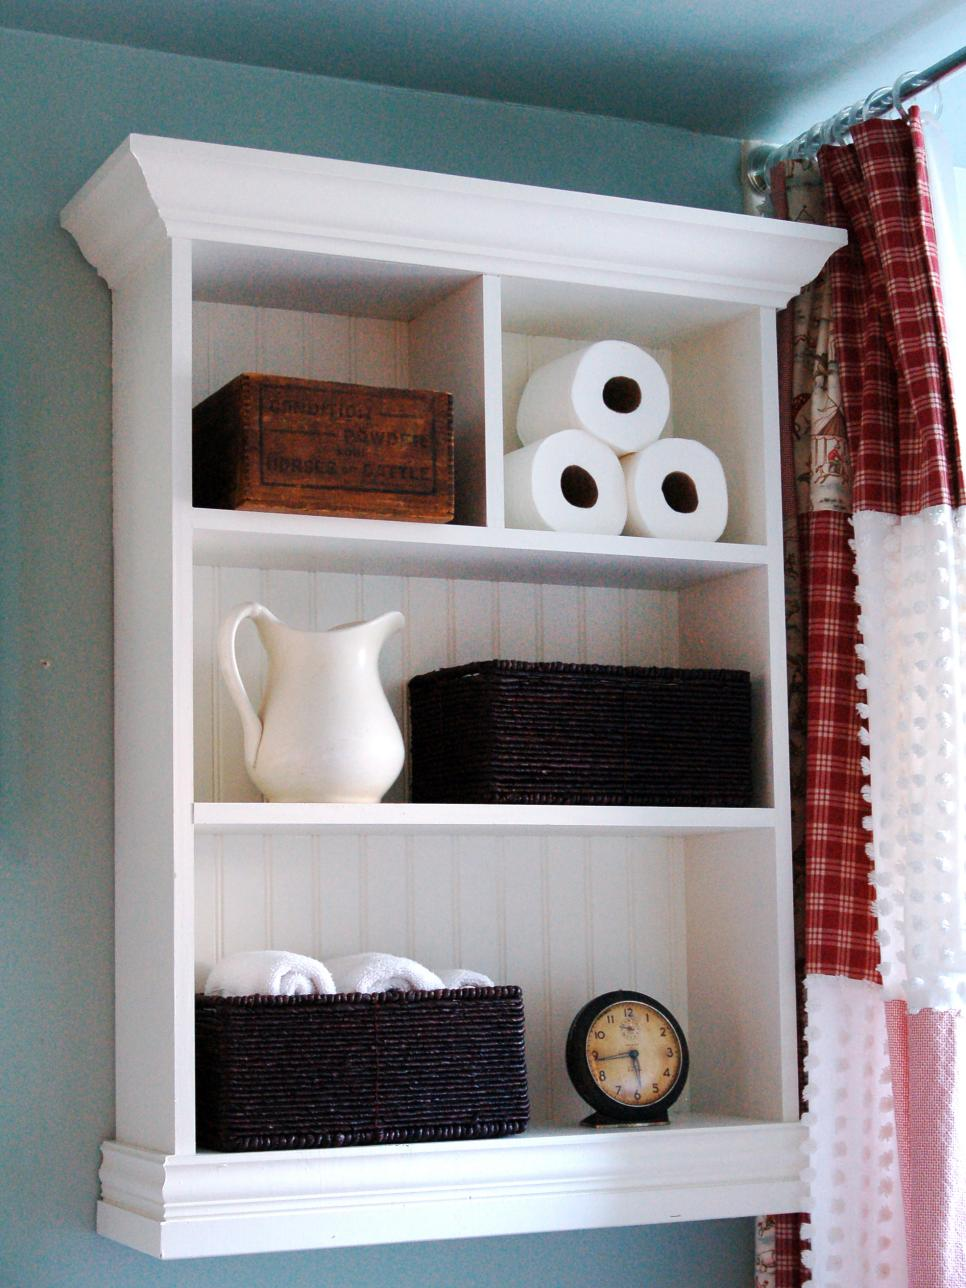 . 12 Clever Bathroom Storage Ideas   HGTV